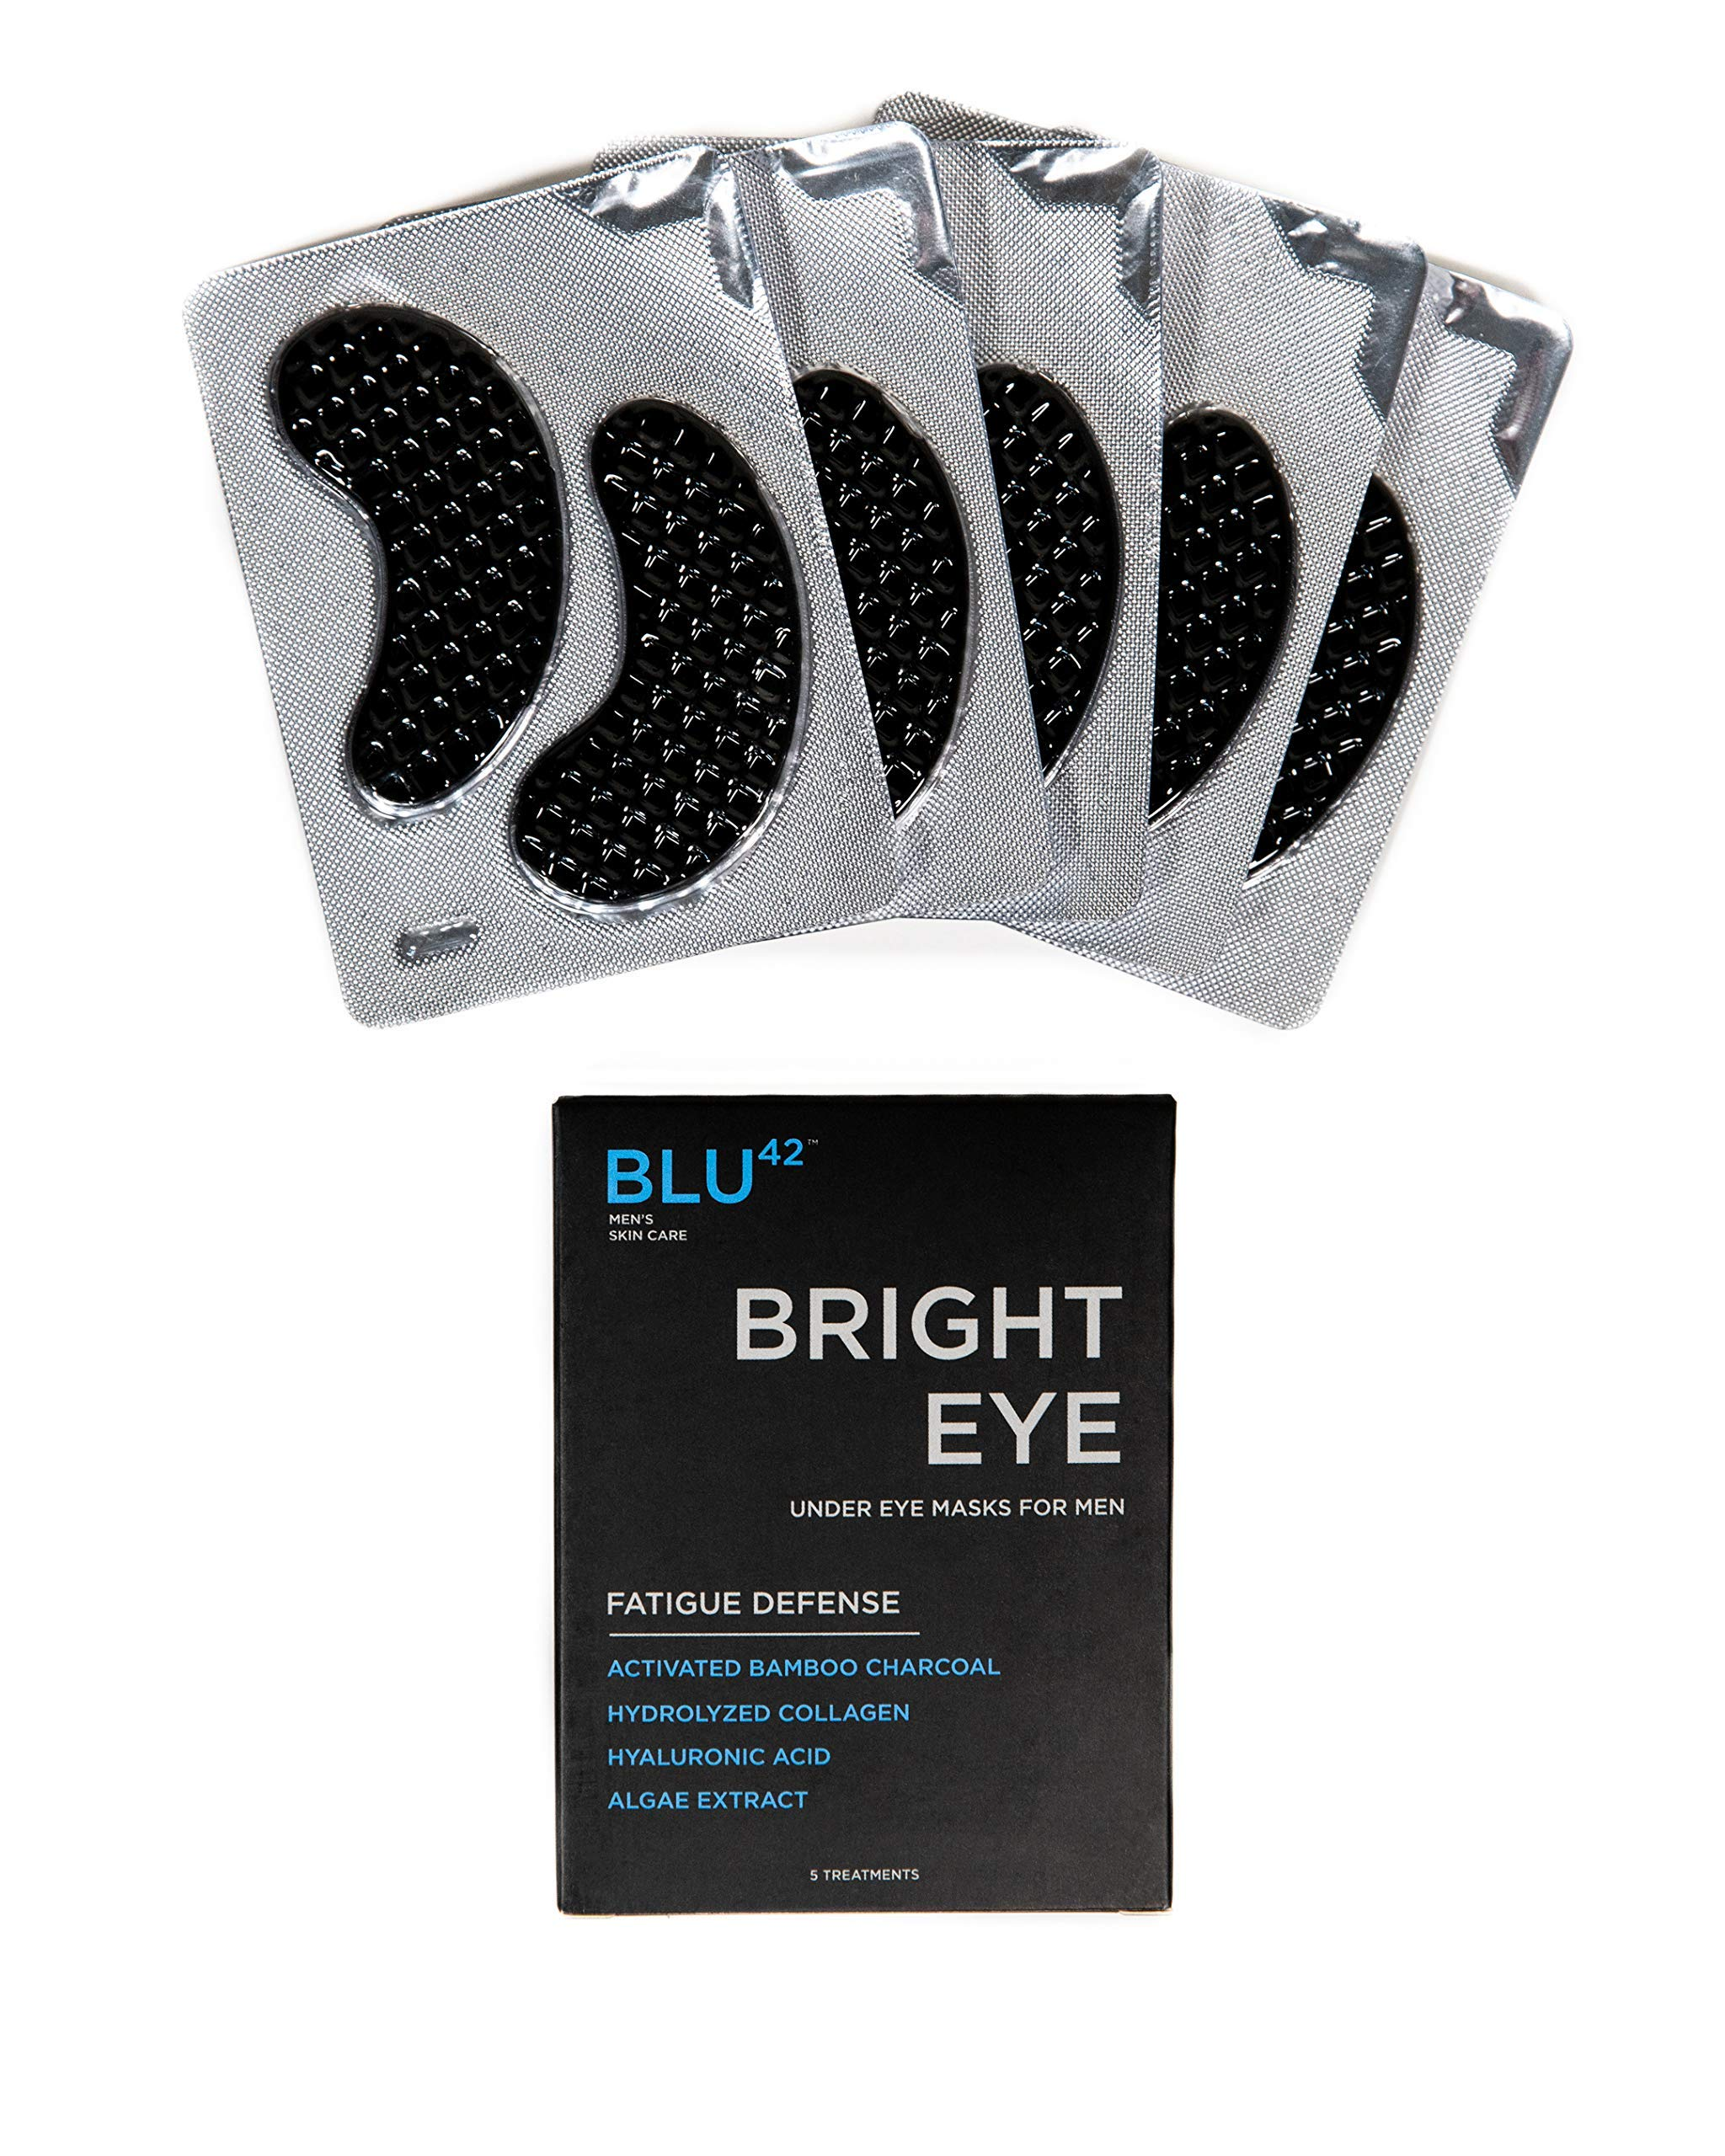 Activated Charcoal Under Eye Masks For Men by Blu42 - Bright Eye Fatigue Defense Eye Patches, Removes Dark Circles, Wrinkles, and Puffiness - Hydrating, Anti-Aging, Anti-Wrinkles - 5 Treatments by BLU42